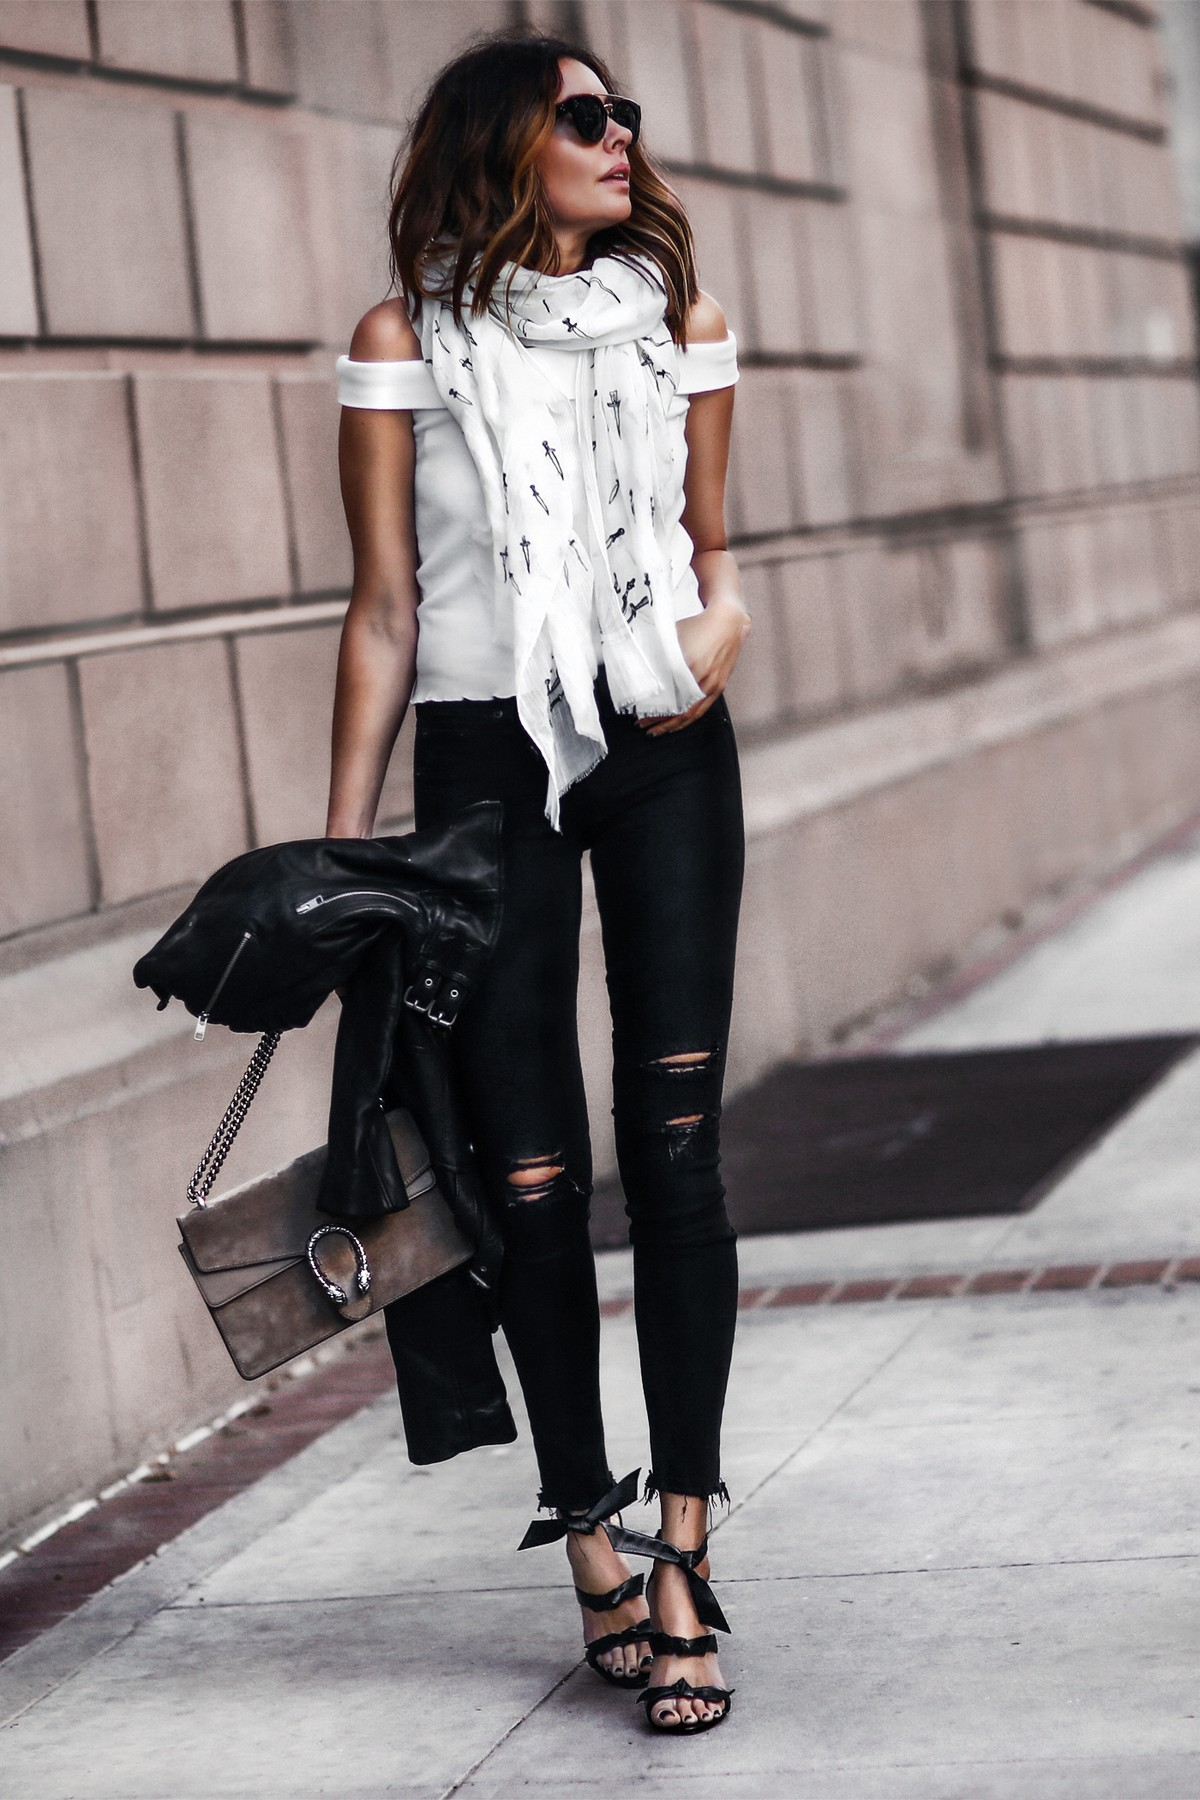 spring scarf, off the shoulder top, ripped black skinny jeans, black heels with bows, gucci bag